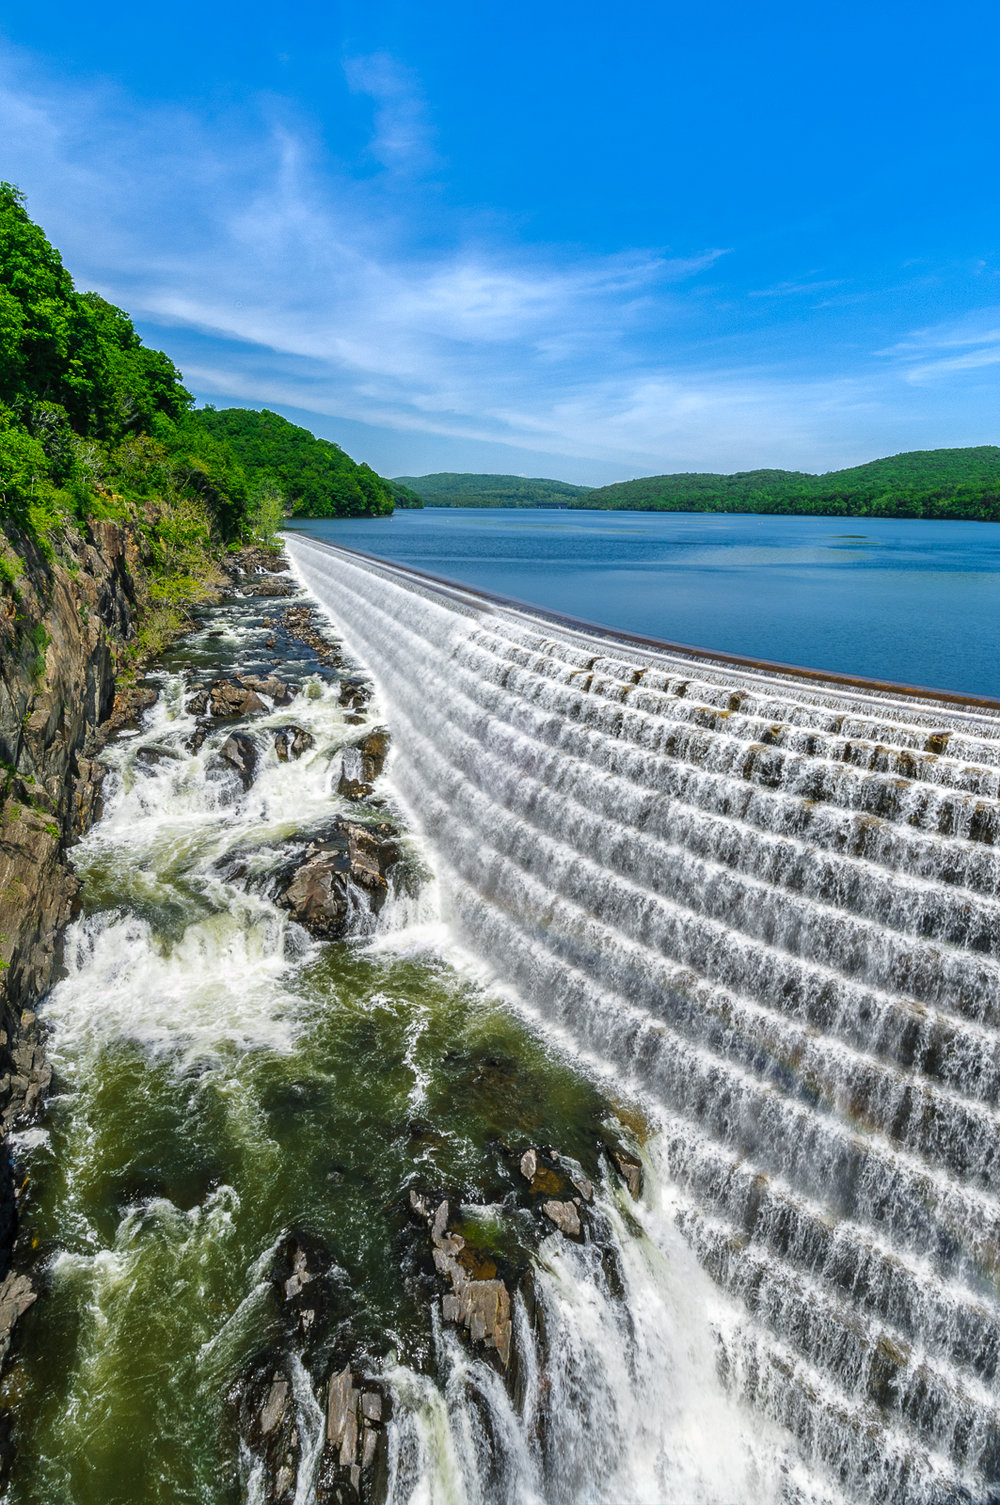 * Croton Dam and spillway *